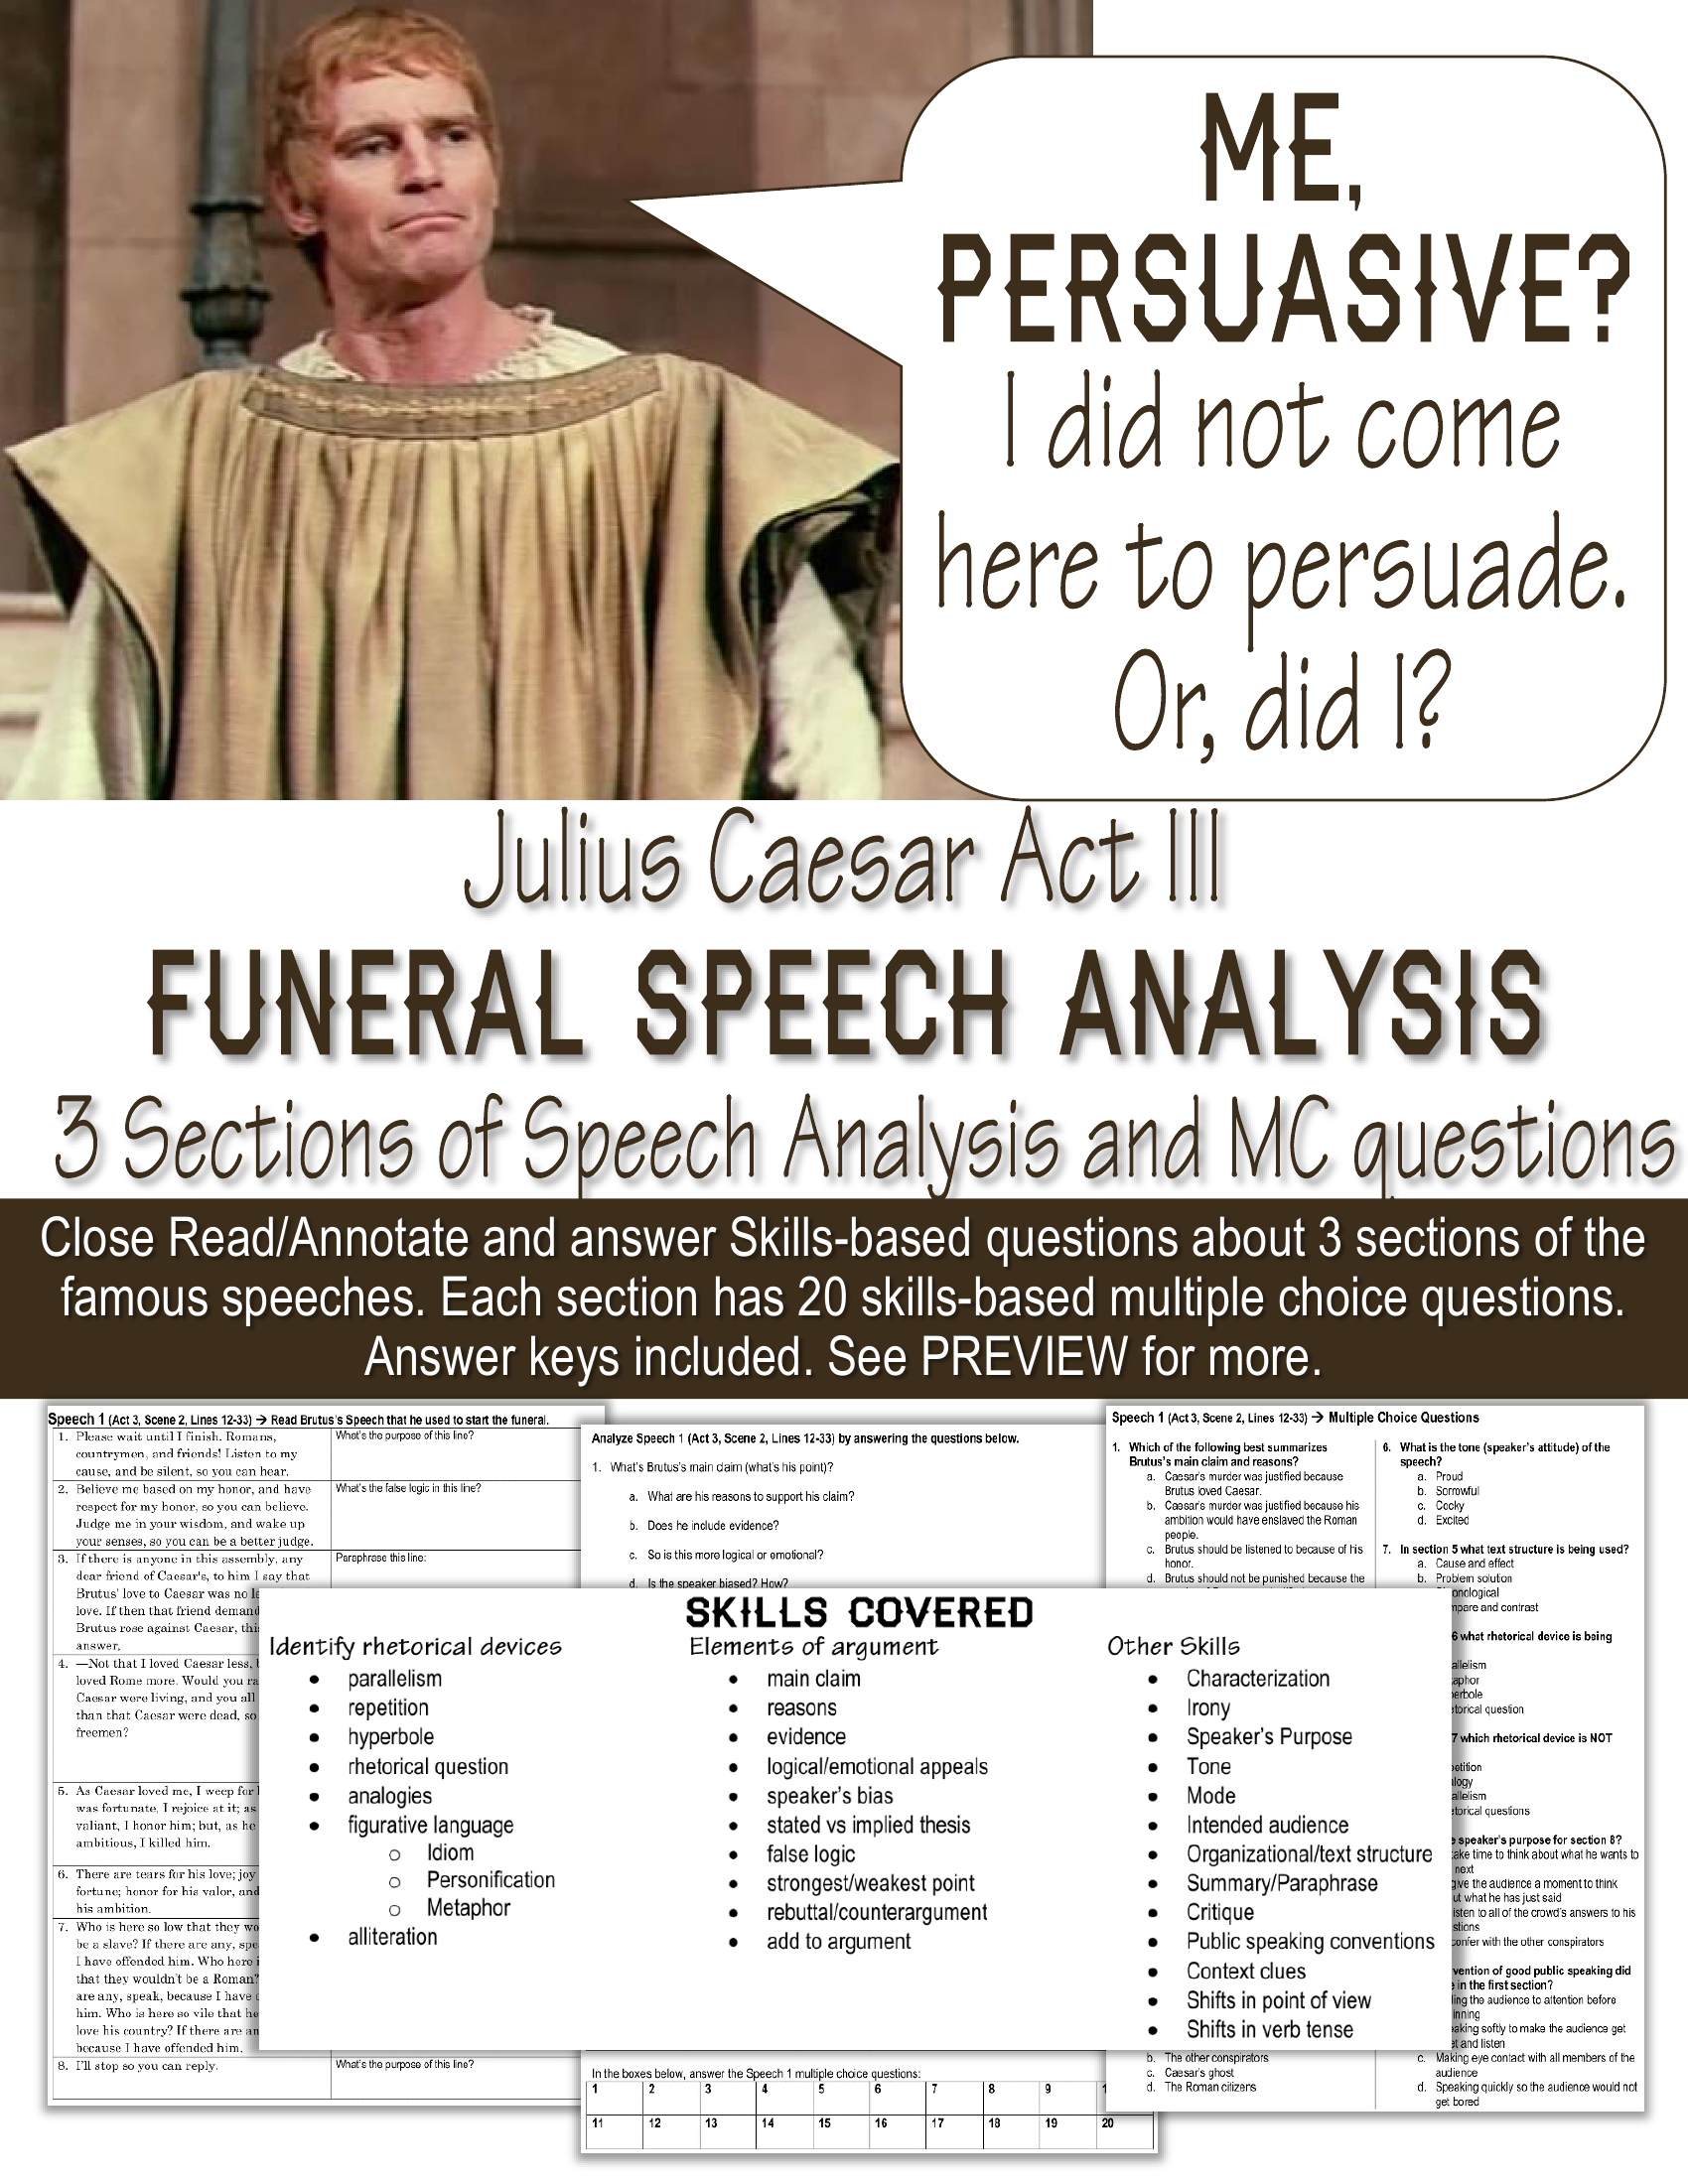 use of persuasive language in julius caesar Rhetoric - the skilful use of language in order to move or persuade - was big business in elizabethan england judging in the rome of julius caesar, skills in public rhetoric give status and power to those who hold public office we see this clearly in the opening scene, when the tribune murellus berates.